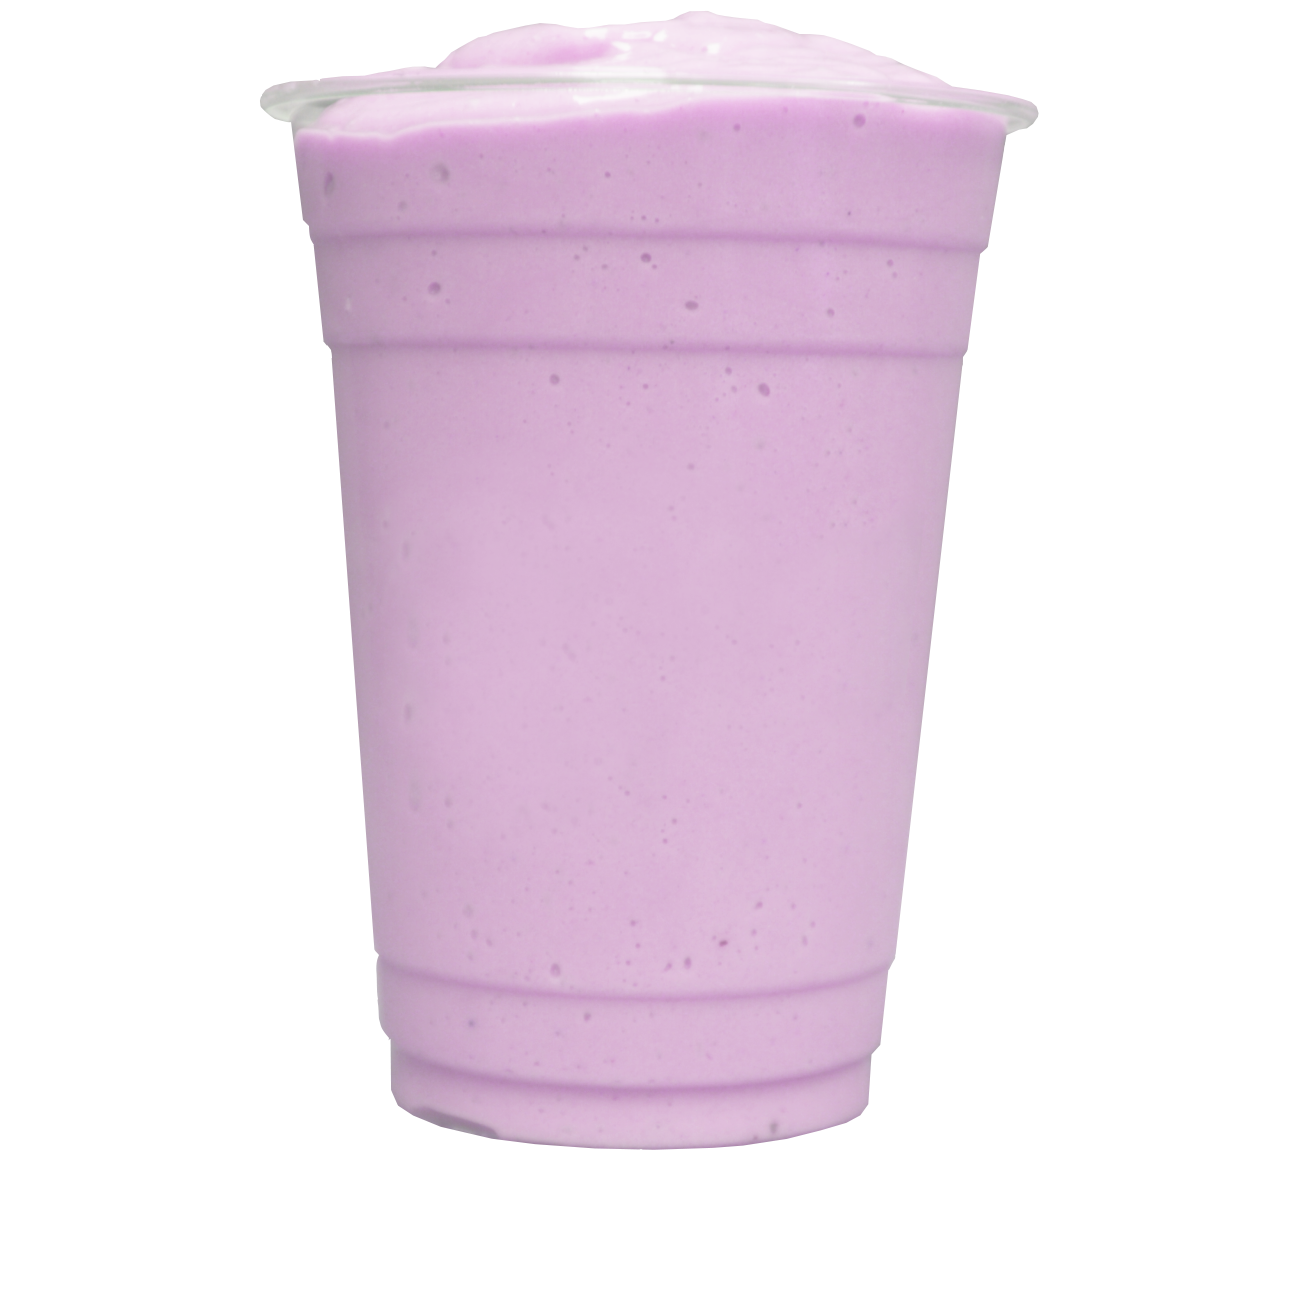 SMOOTHIE_tyger_05212019.png